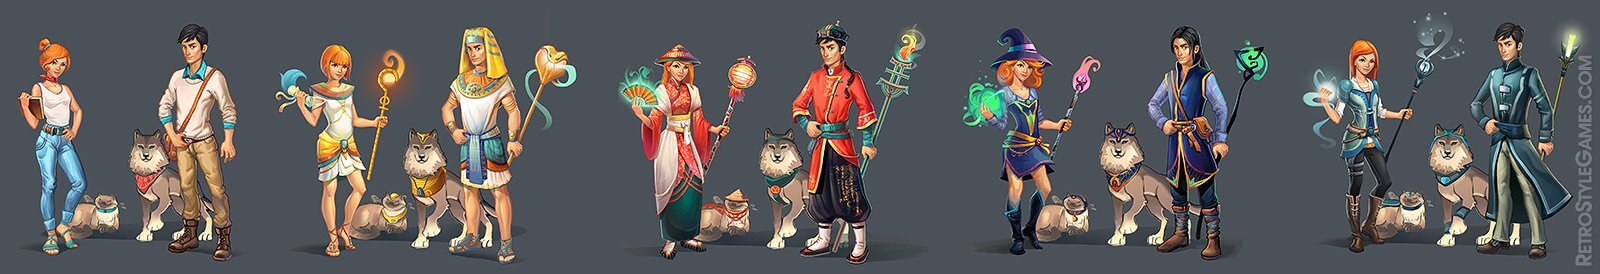 characters 2d magic heroes match 3 game